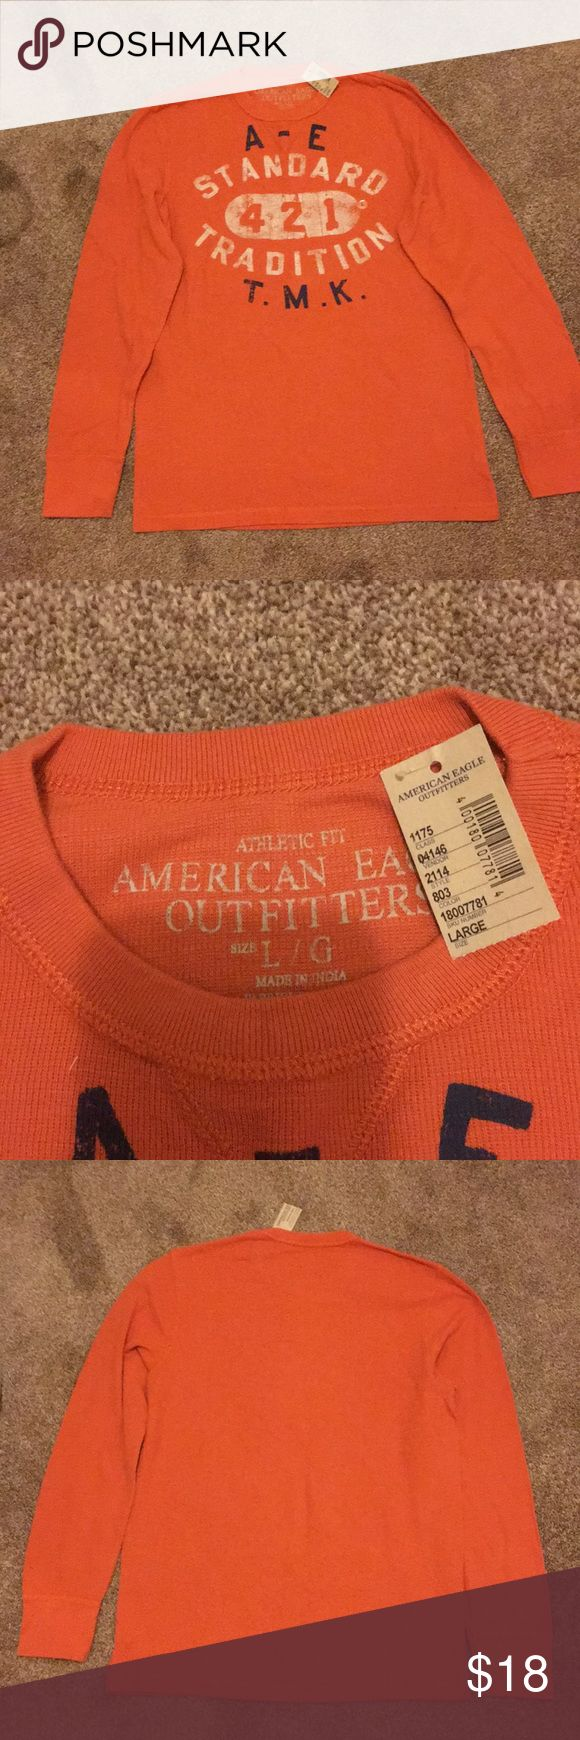 American eagle men's thermal American eagle men's thermal long sleeve shirt. NWT Size large American Eagle Outfitters Shirts Tees - Long Sleeve